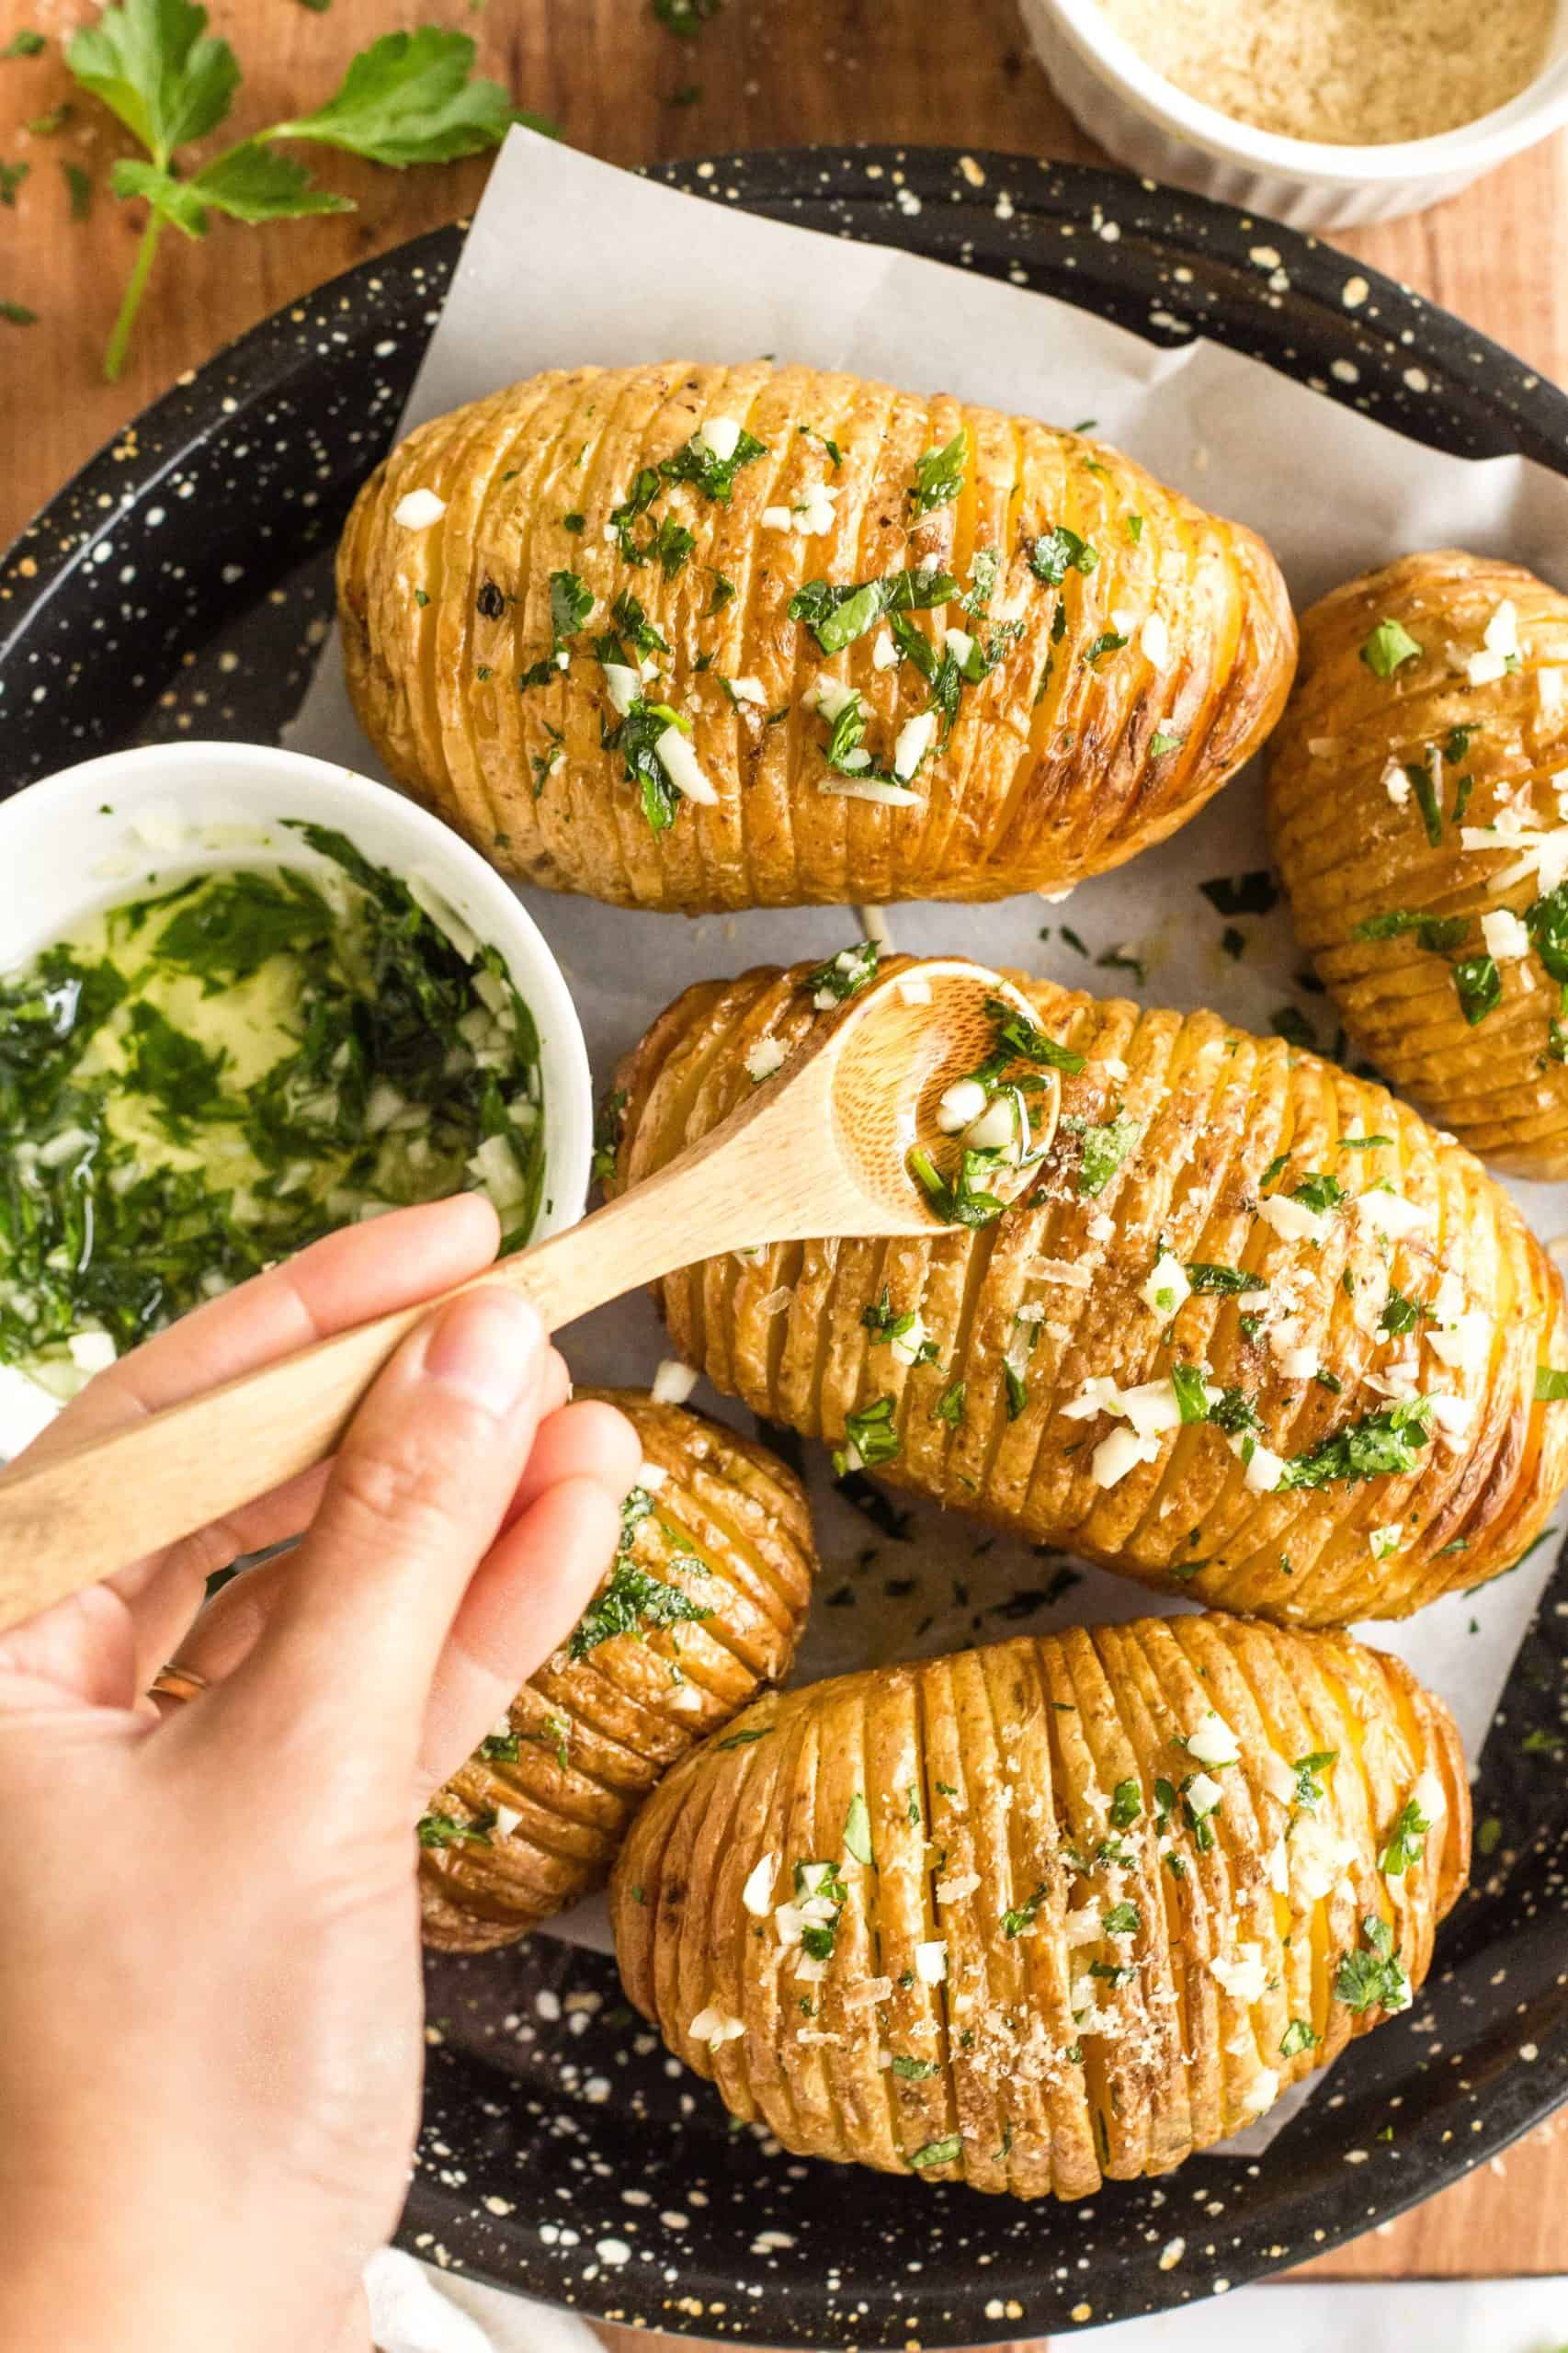 Hand drizzling garlic-parsley sauce over freshly cooked hasselback potatoes.